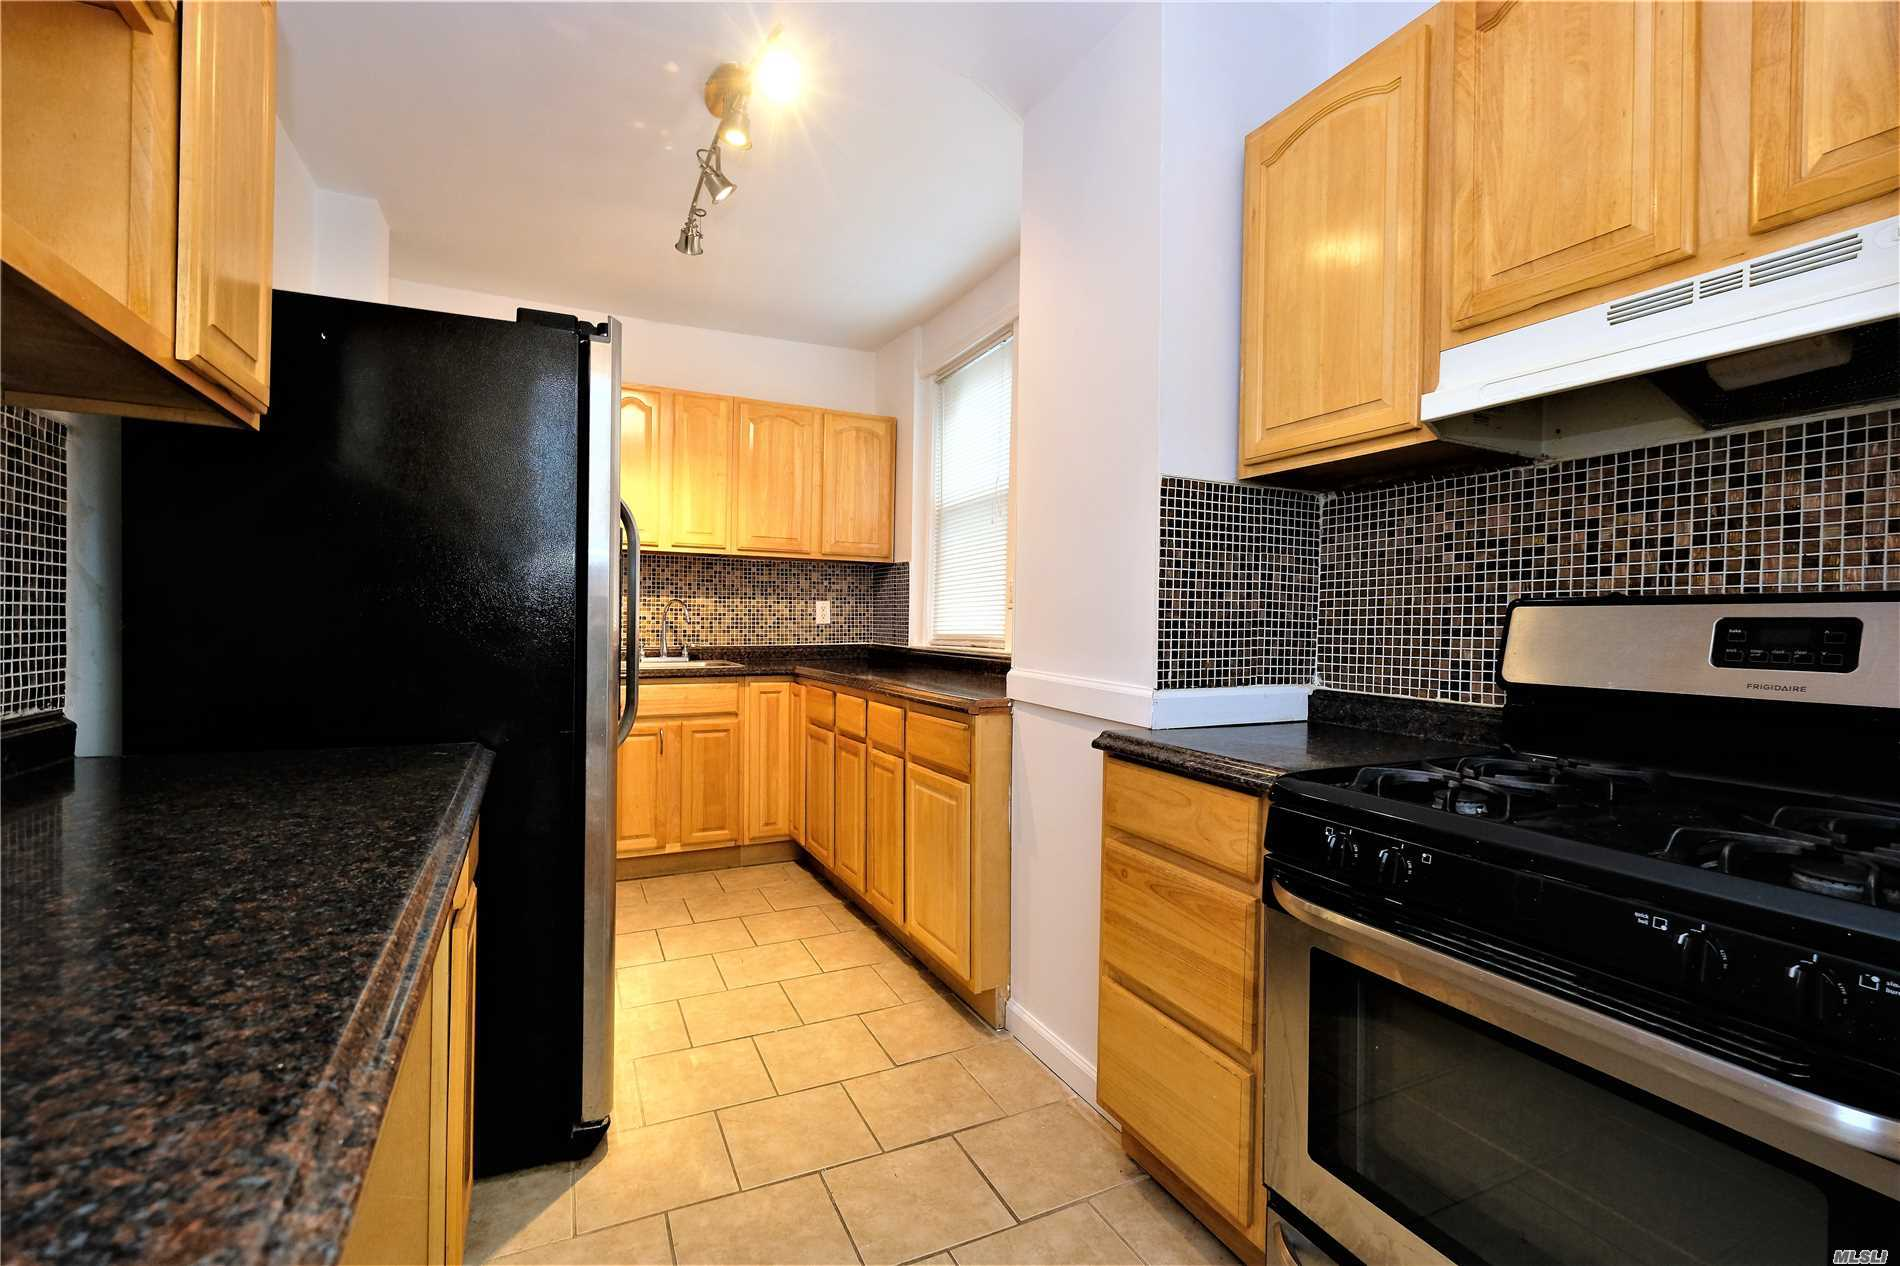 Beautiful Updated 3-Beds 1.5-Baths Includes Driveway, Garage And Backyard.2 Blocks From Vibrant Queens Blvd, Subway, Chase, Dunkin Donuts, Ups, & Restaurants. Short Distance To Subway (F Sutphin & E/F Briarwood Stations) 15Min Drive To Flushing, Jfk & Lga Airport.